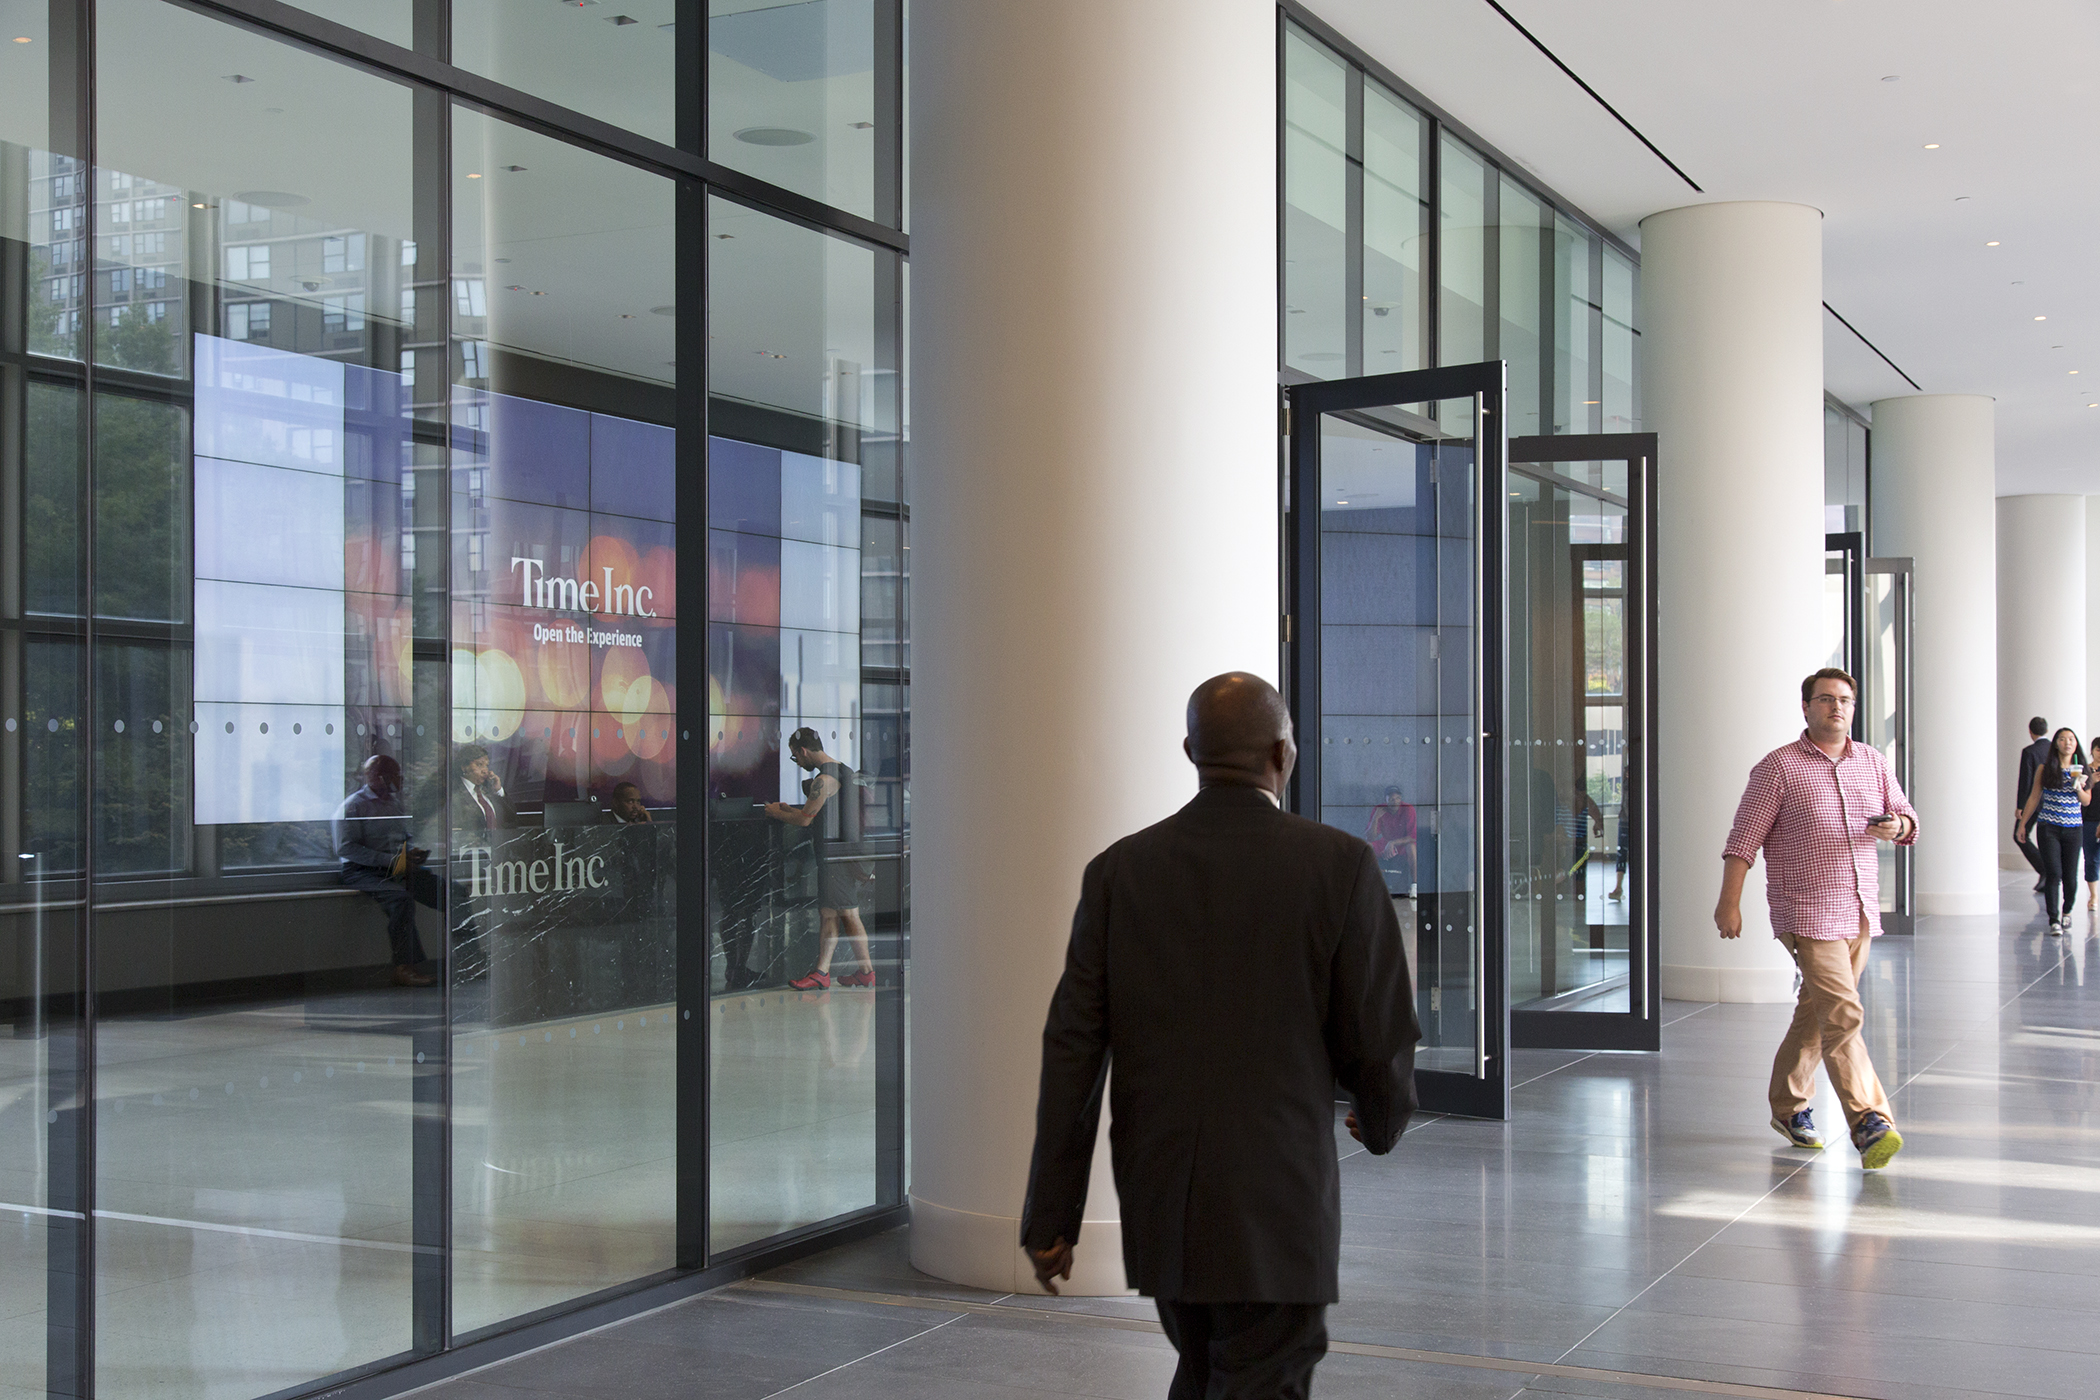 The entrance to Time Inc. inside of Brookfield Place, 225 Liberty Street.